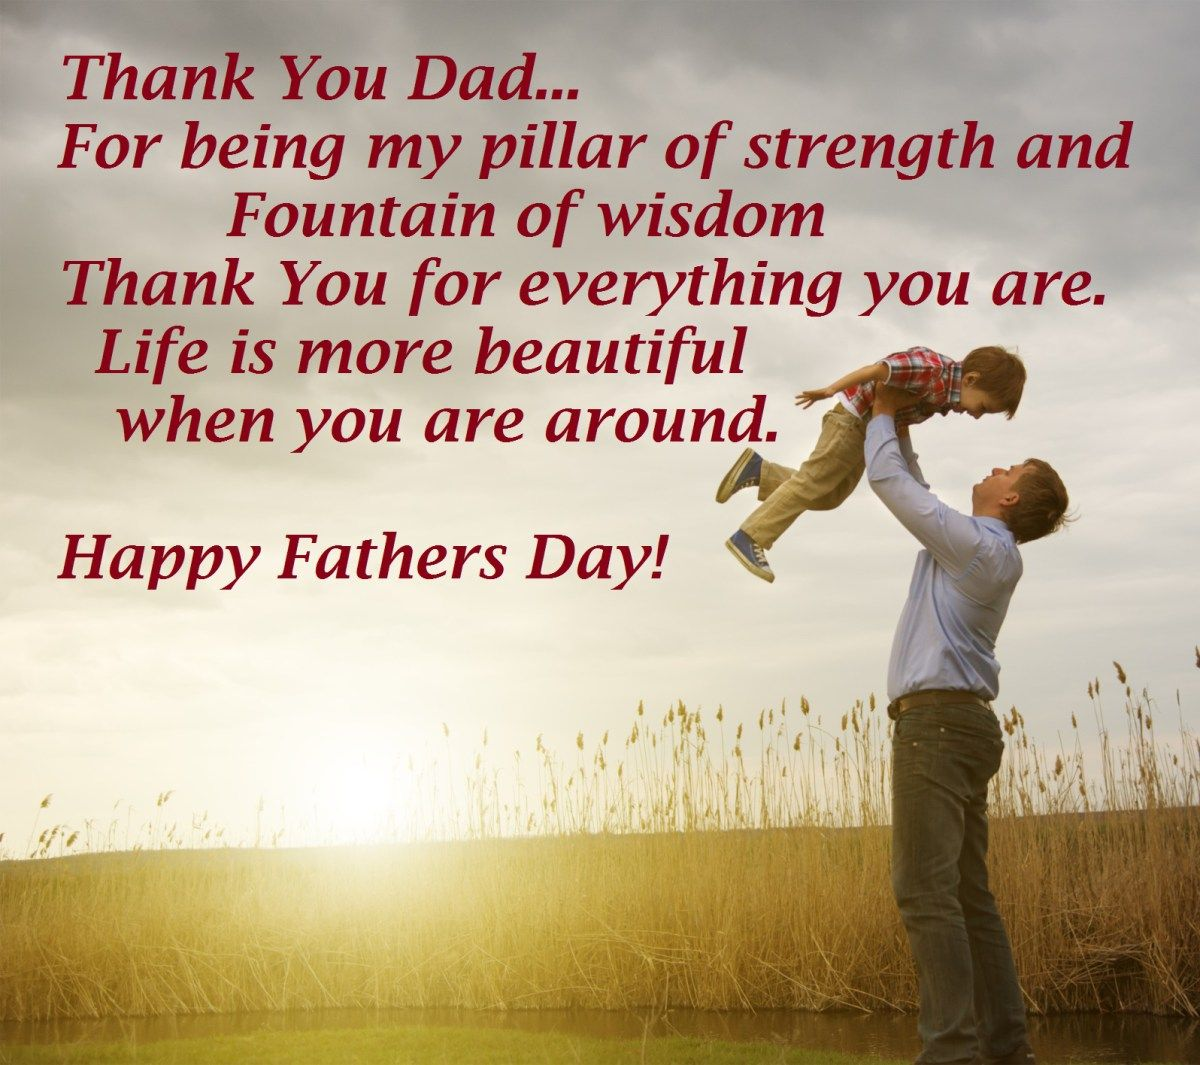 Image of: Daughter Beautiful Happy Fathers Day Quotes Wishes 2017 Pinterest Beautiful Happy Fathers Day Quotes Wishes 2017 Words To Live